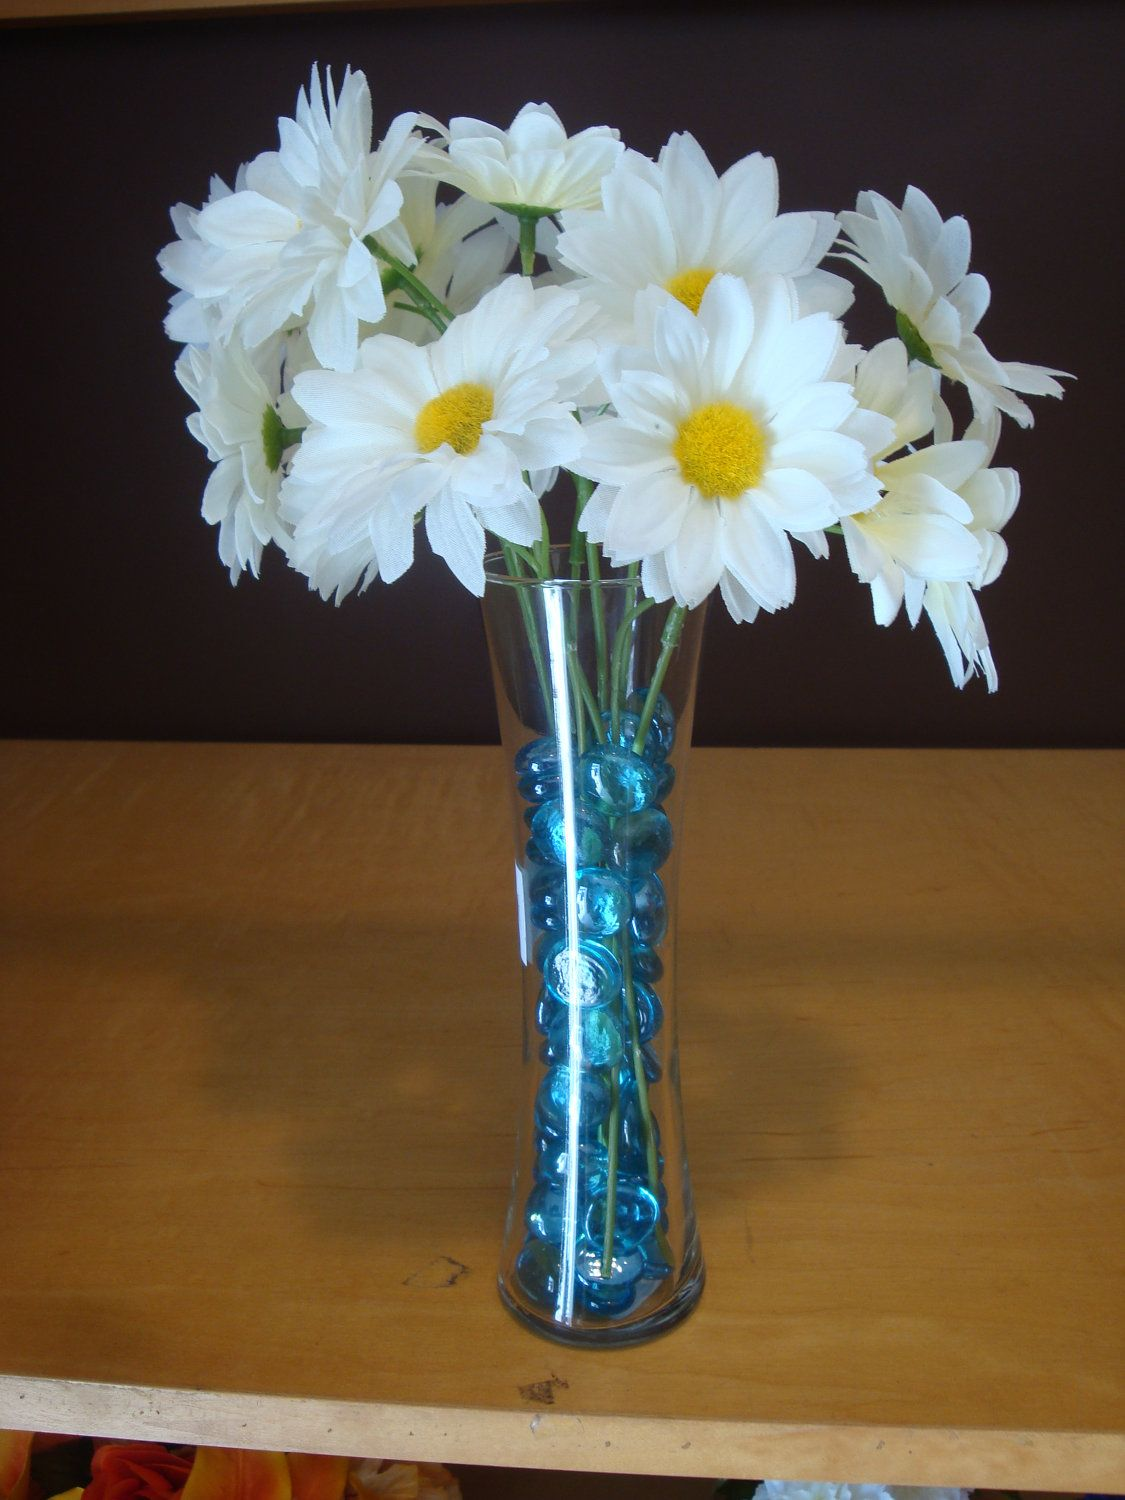 Flower Vase Ideas For Decorating Beautiful White Daisy Flower Small Complete Vase Wedding